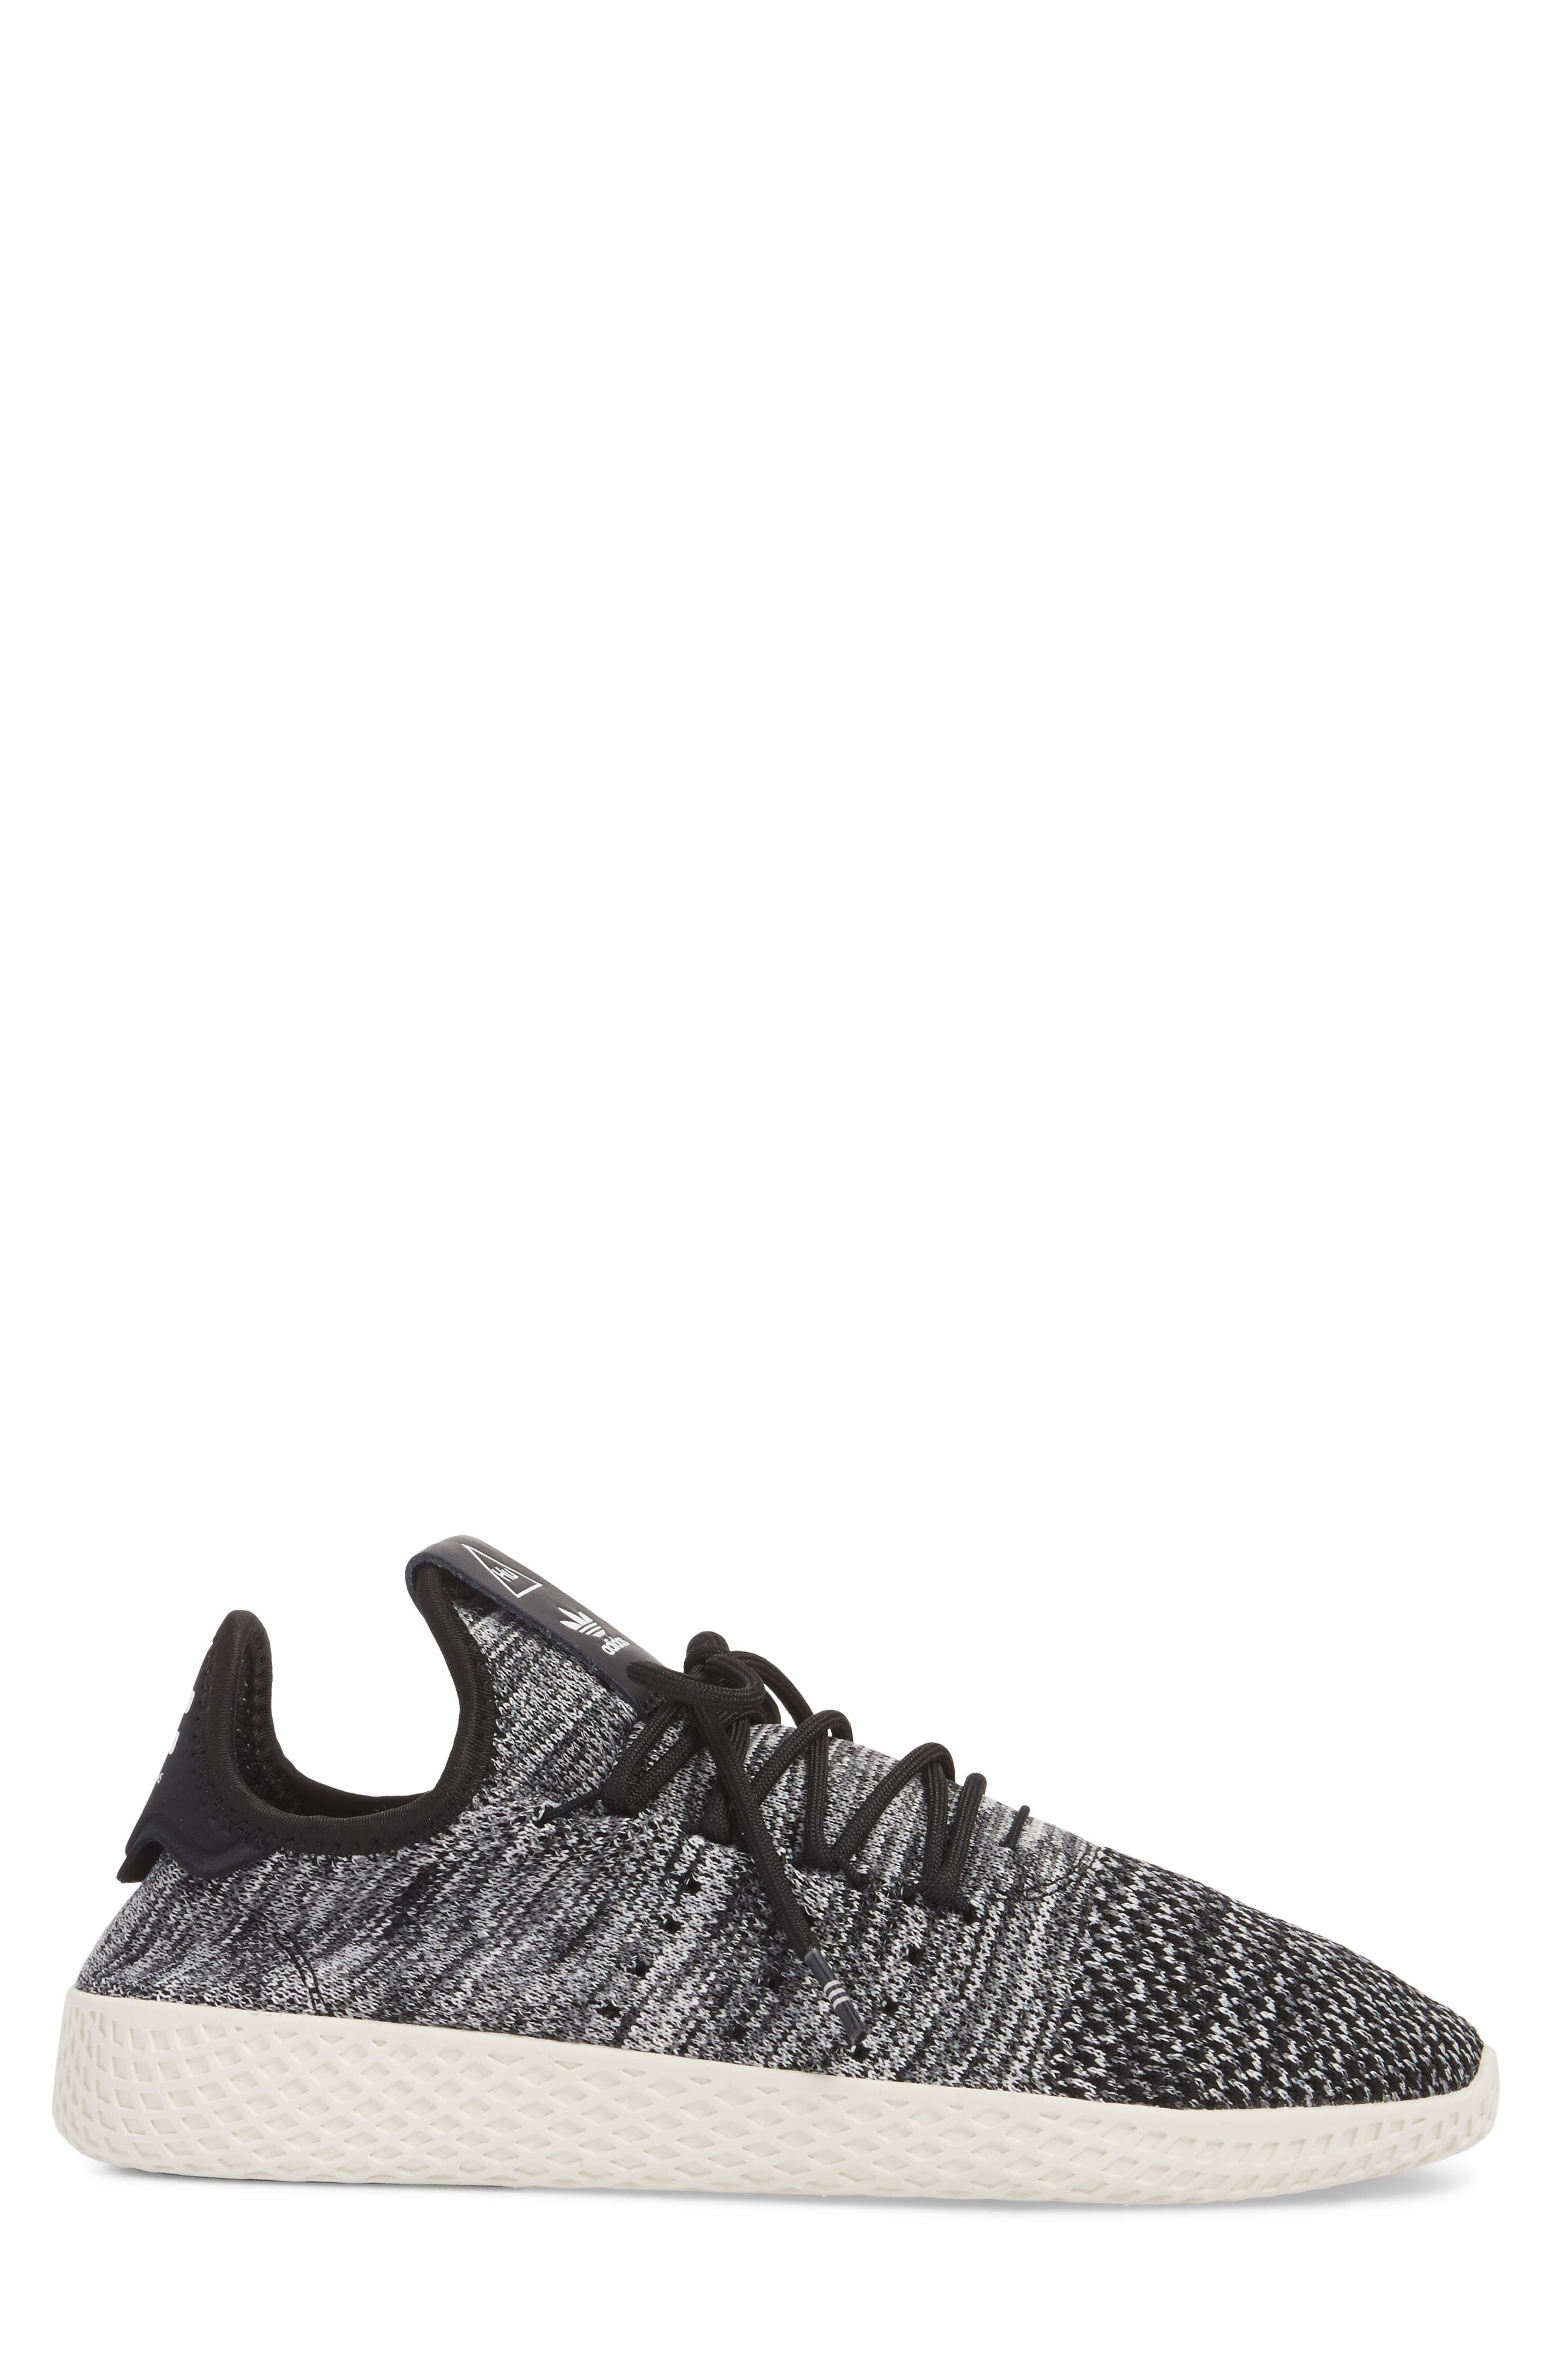 Pharrell Williams Tennis Hu Sneaker,                             Alternate thumbnail 3, color,                             Chalk White/ Core Black/ White